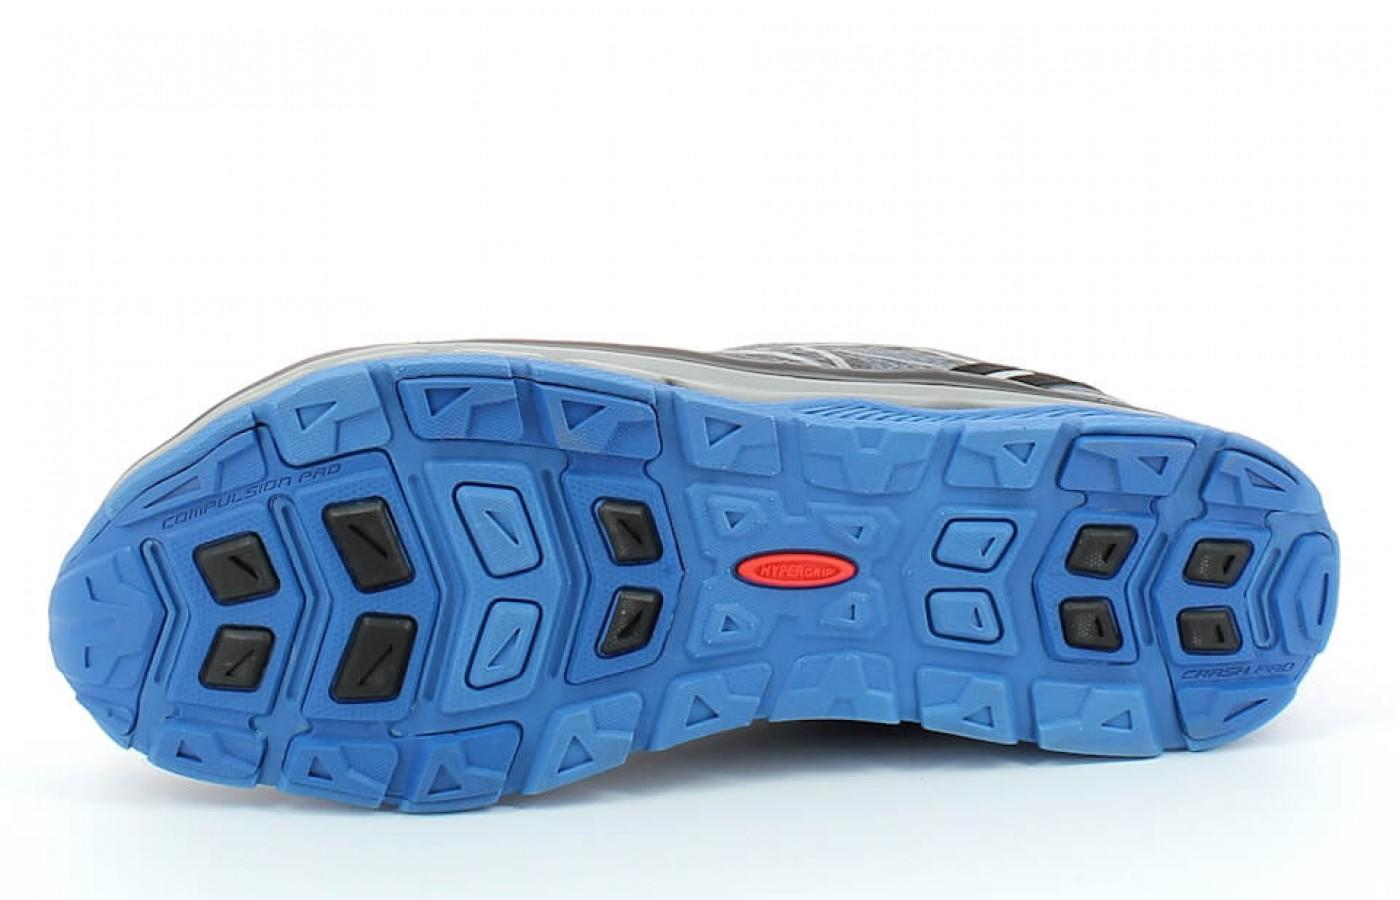 The treads on the Treksta Mega Wave's outsole are less pronounced than most other trail shoes.